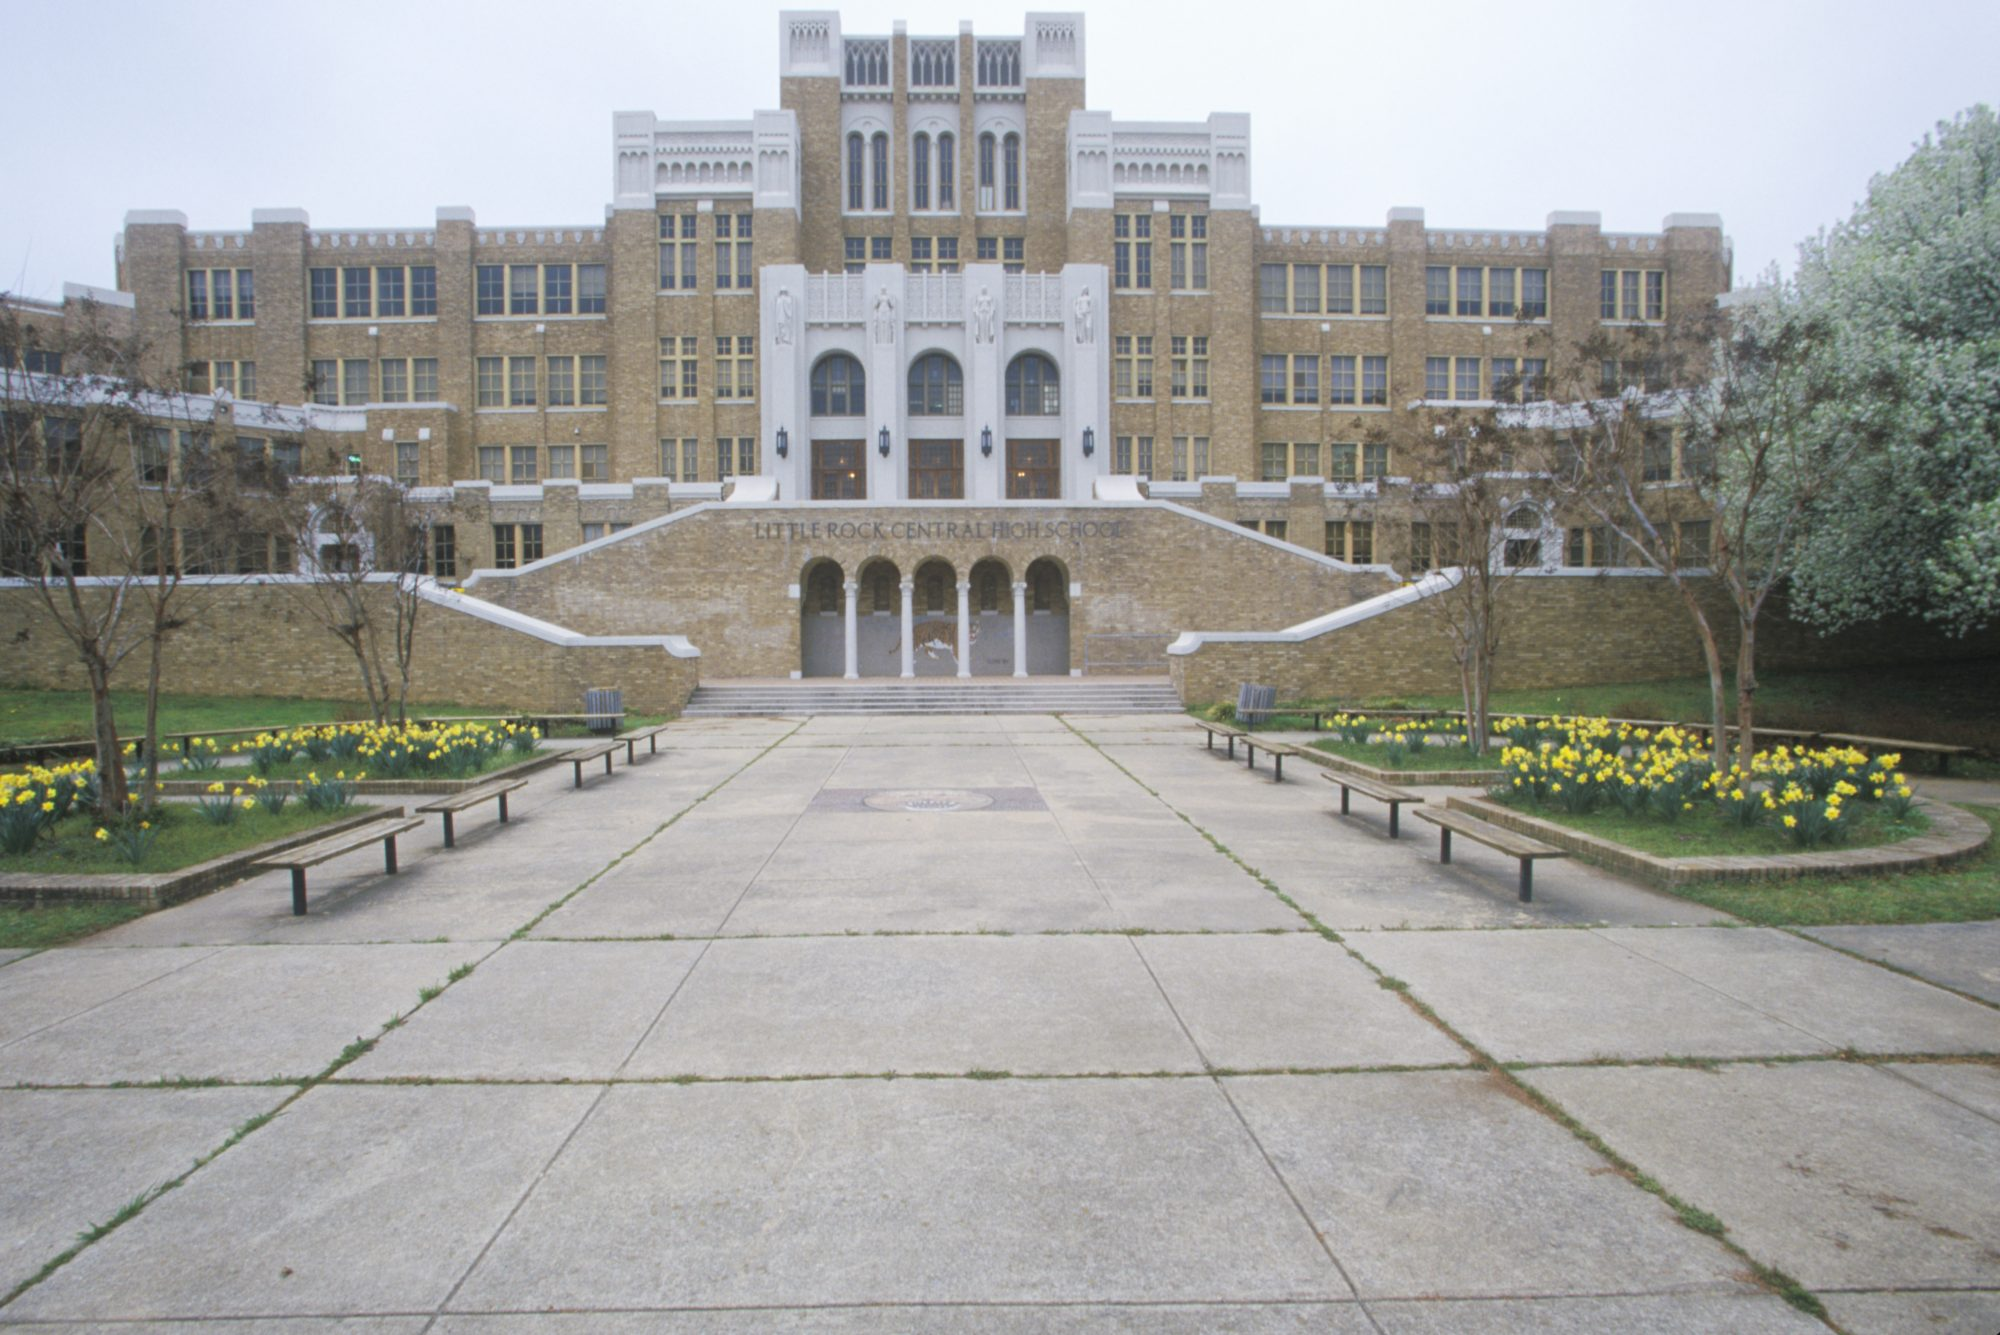 Little Rock Central High School in Arkansas